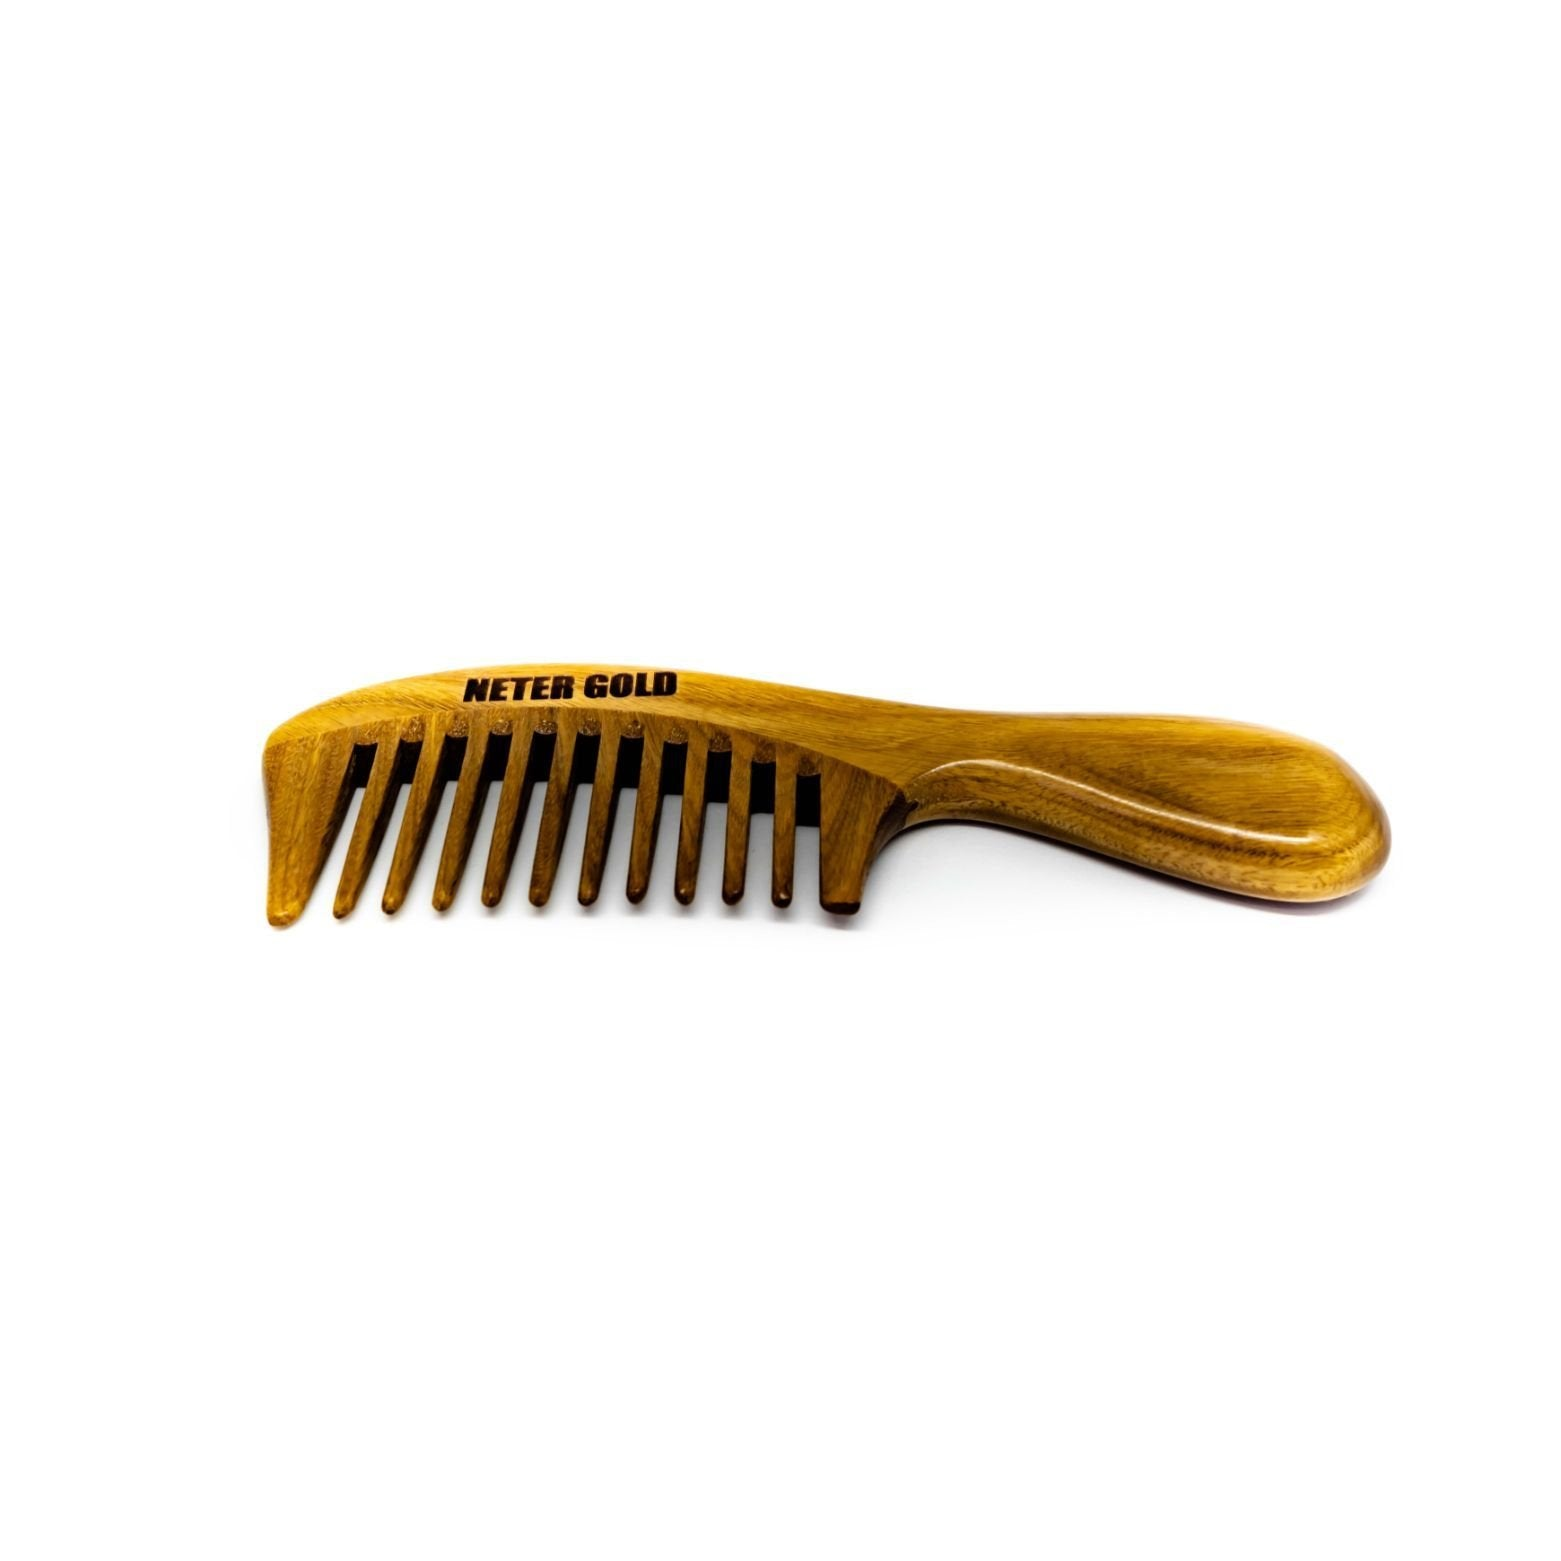 Semi Wide-tooth Detangling Comb - Neter Gold - NTRGLD - NETER GOLD - All natural body care products designed to increase your natural godly glow. - hair growth - eczema - dry skin